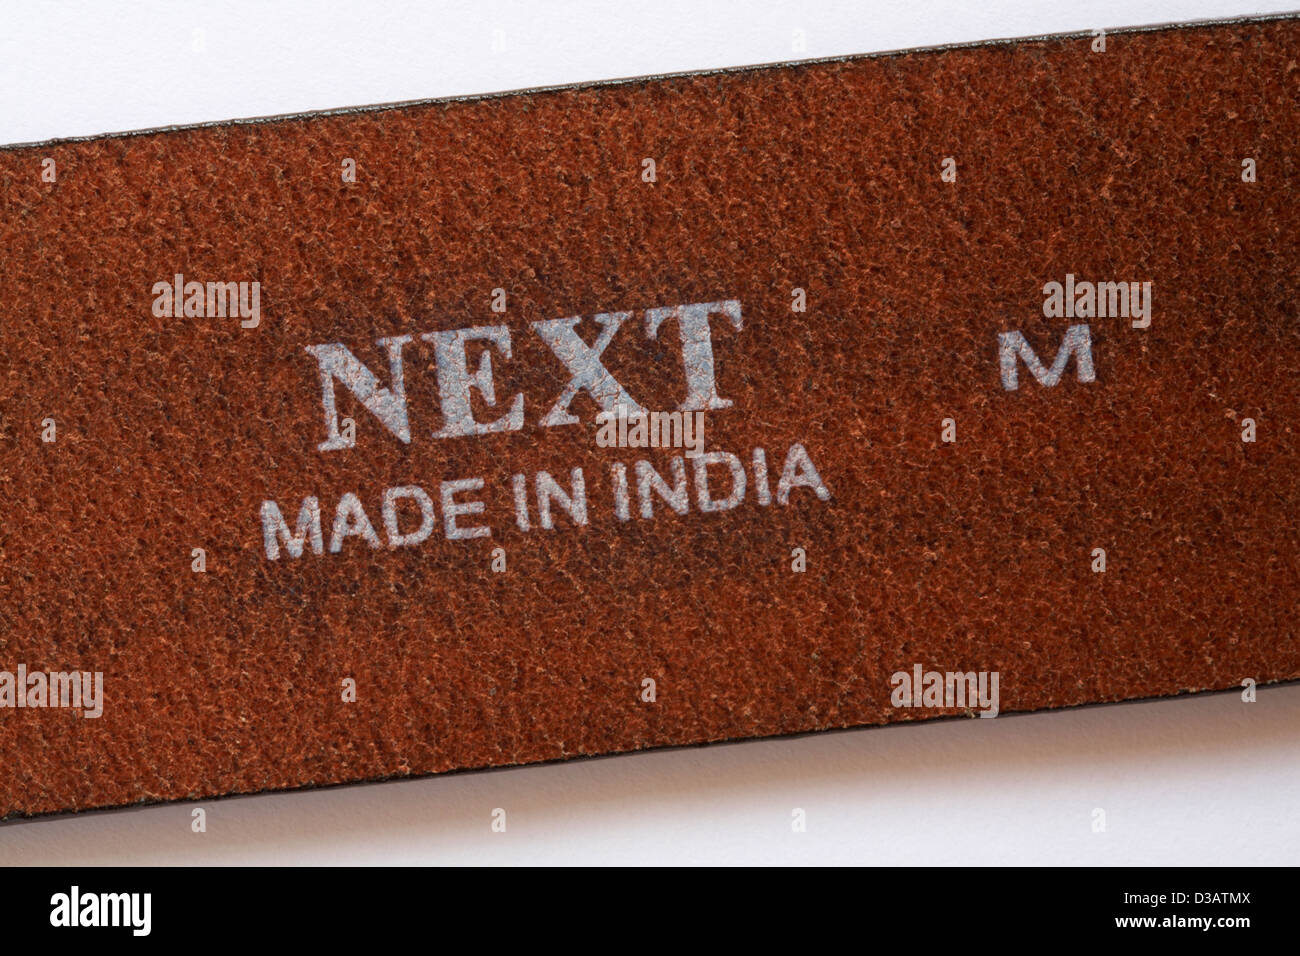 102a5ae5a0ede detail on Next leather belt made in India Stock Photo: 53713994 - Alamy